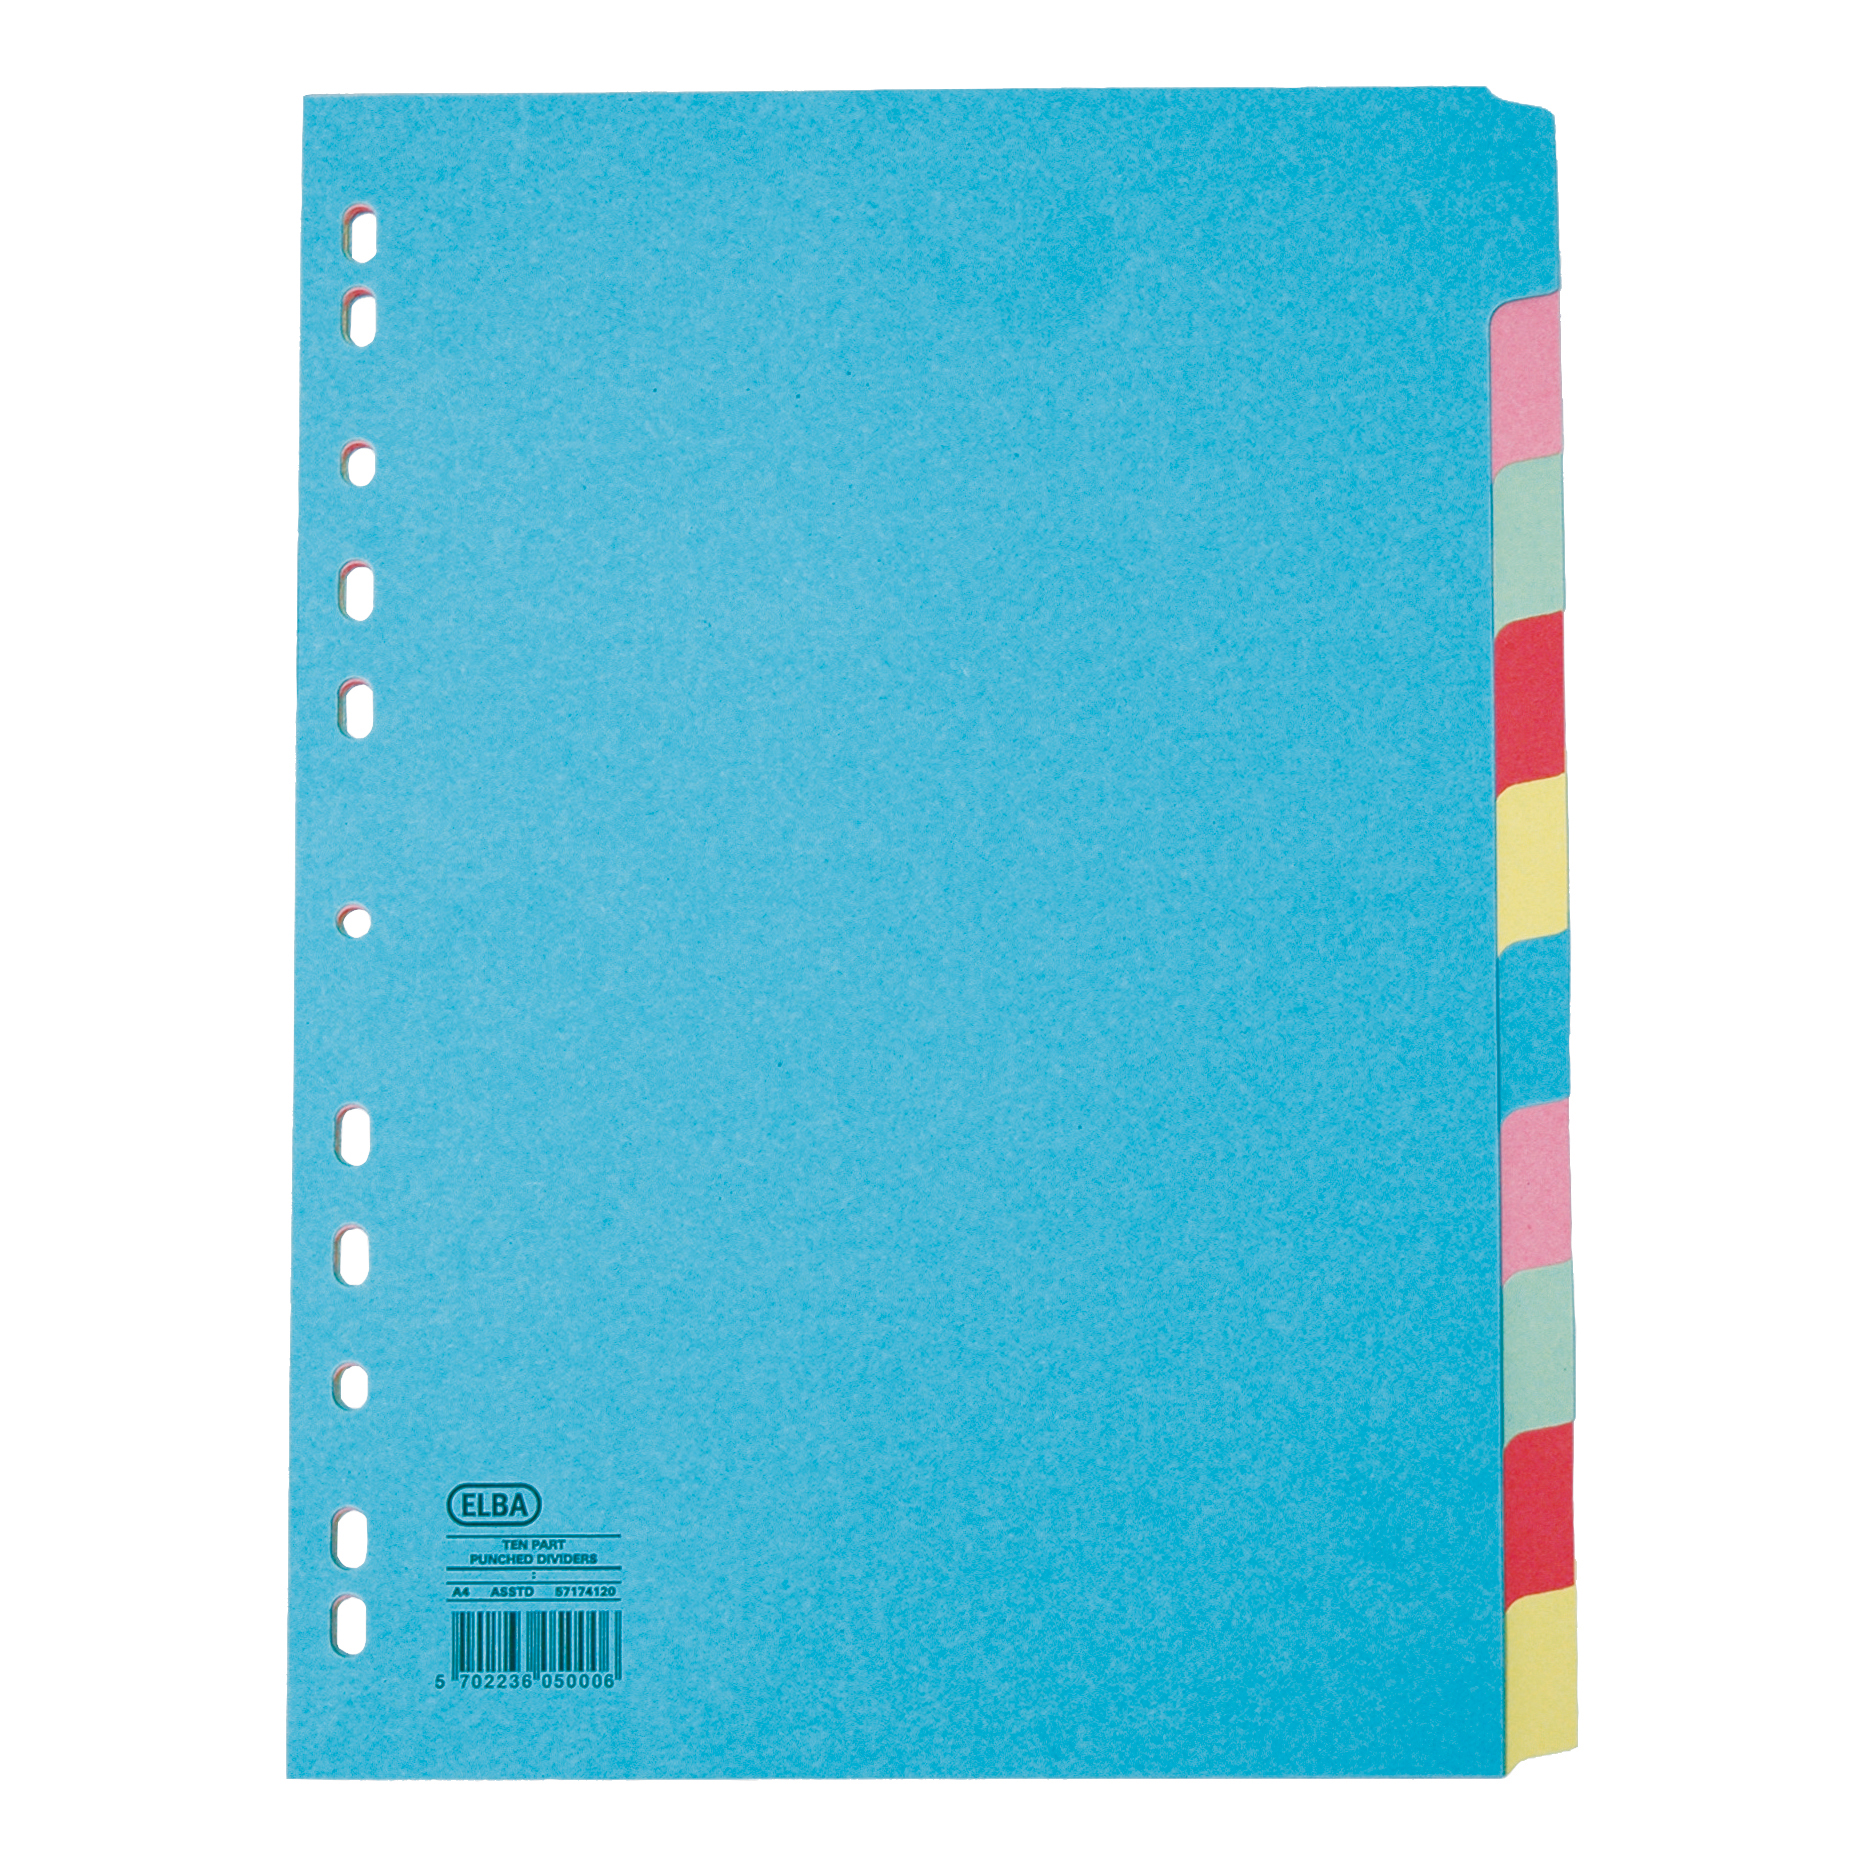 Image for Elba Subject Dividers 10-Part Card Multipunched Recyclable 160gsm Extra Wide A4+ Assorted Ref 400007242